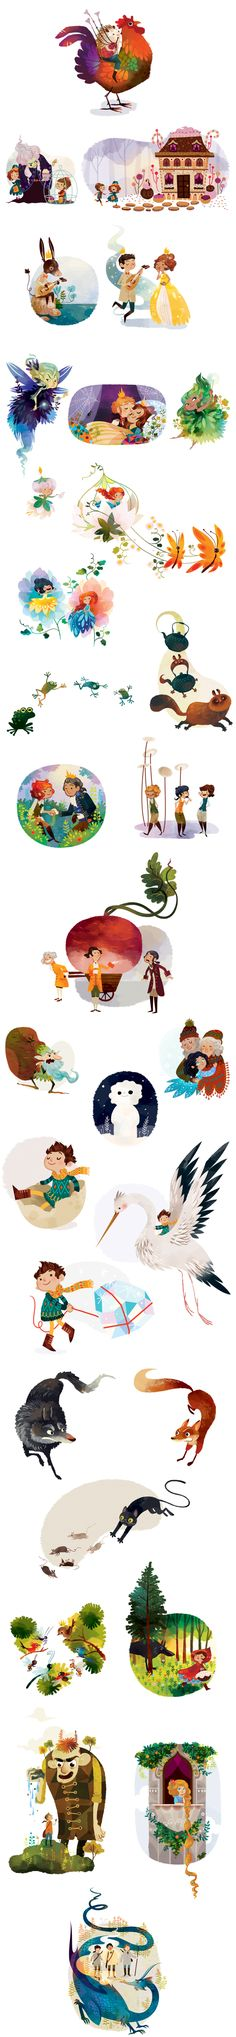 Fairy Tales by Lorena Alvarez Gómez, via Behance